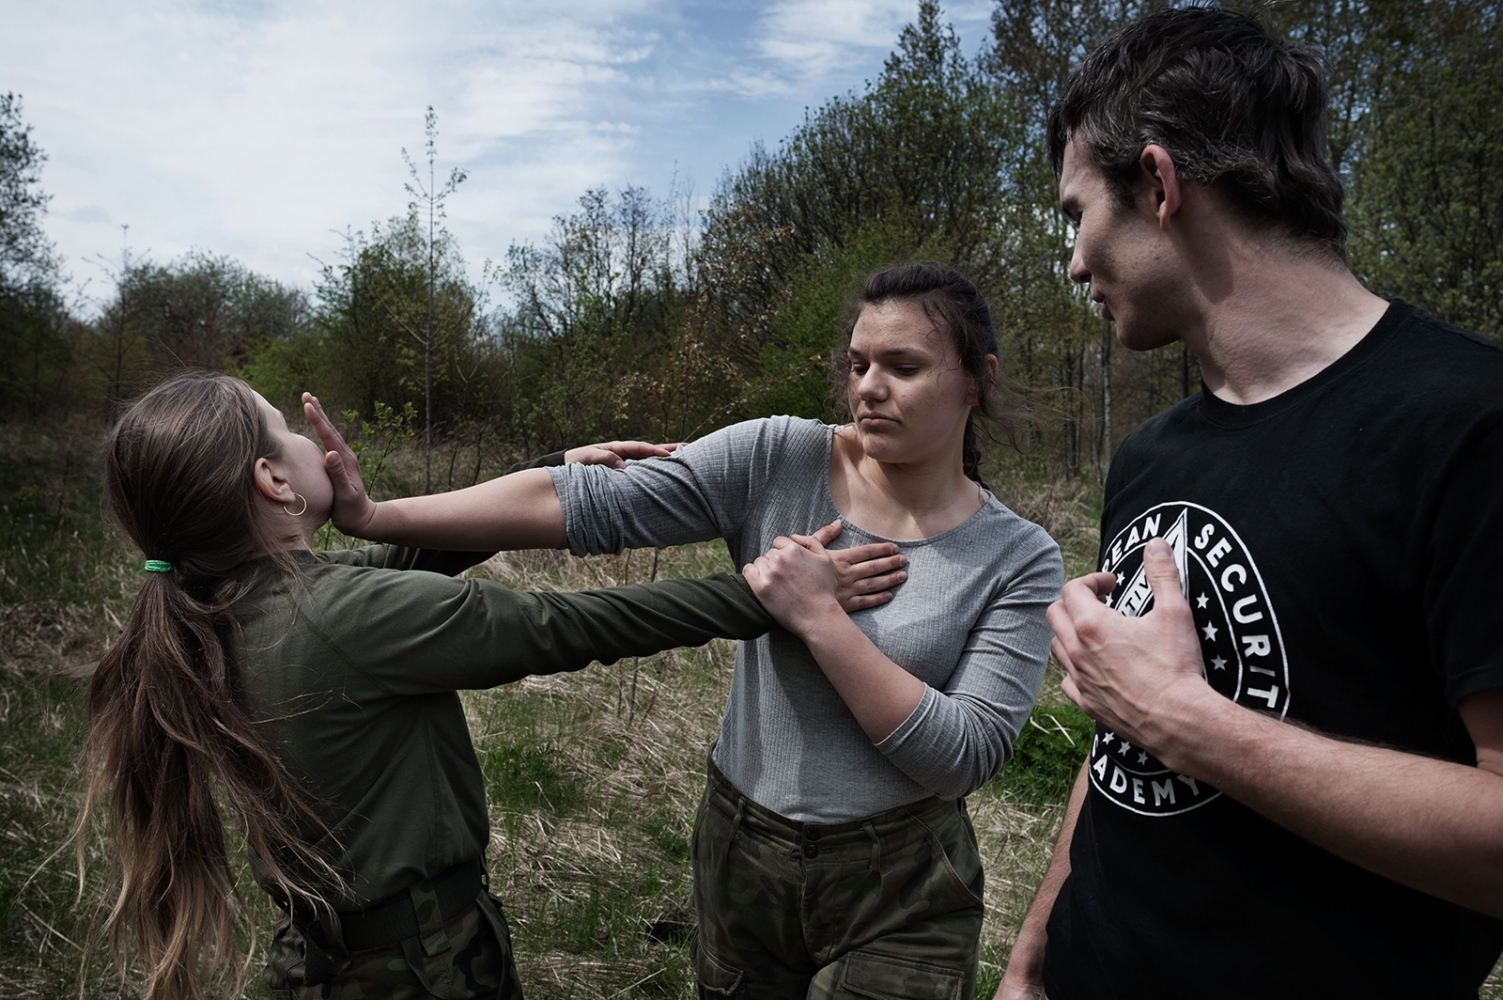 """Students of 16 and 17 years old, learning the Krav Maga movements with K.Z – an inspector from paramilitary organization.In general the paramilitary organizations are composed by soldiers or ex-soldiers, sometimes also by regular citizens who are passionate about military.K.Z. is an ex-soldier currently employed by a security firm similar to """"Blackwater""""."""